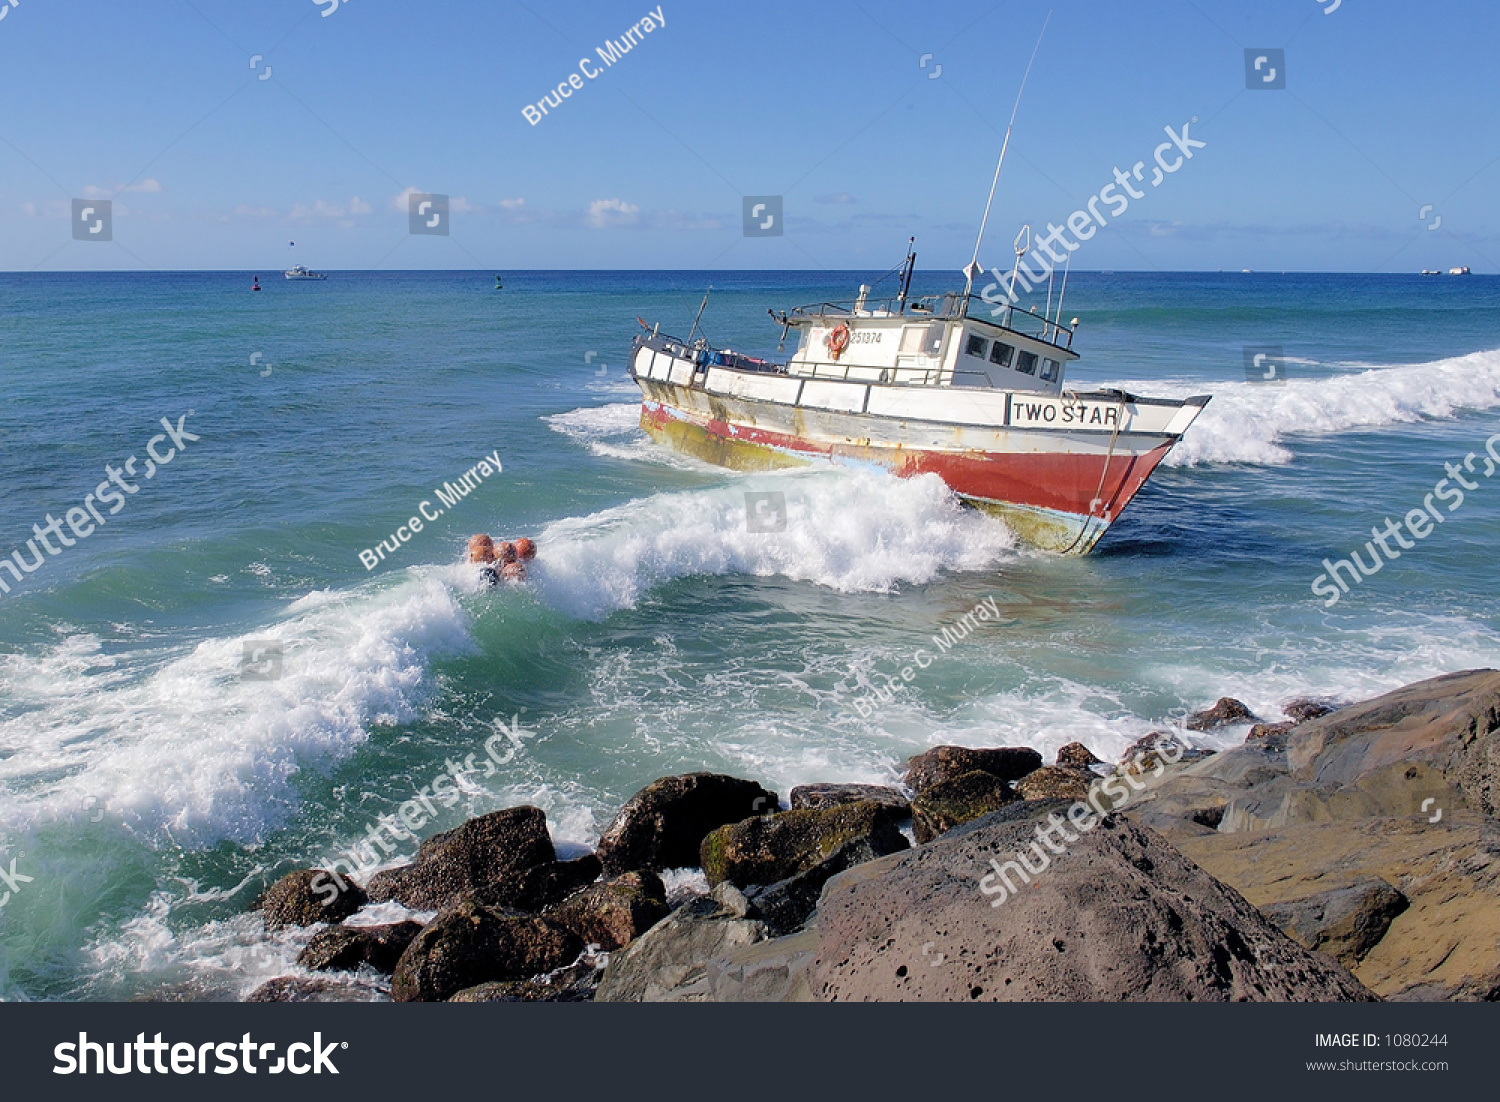 Fishing boat two star runs aground stock photo 1080244 for Shore fishing oahu